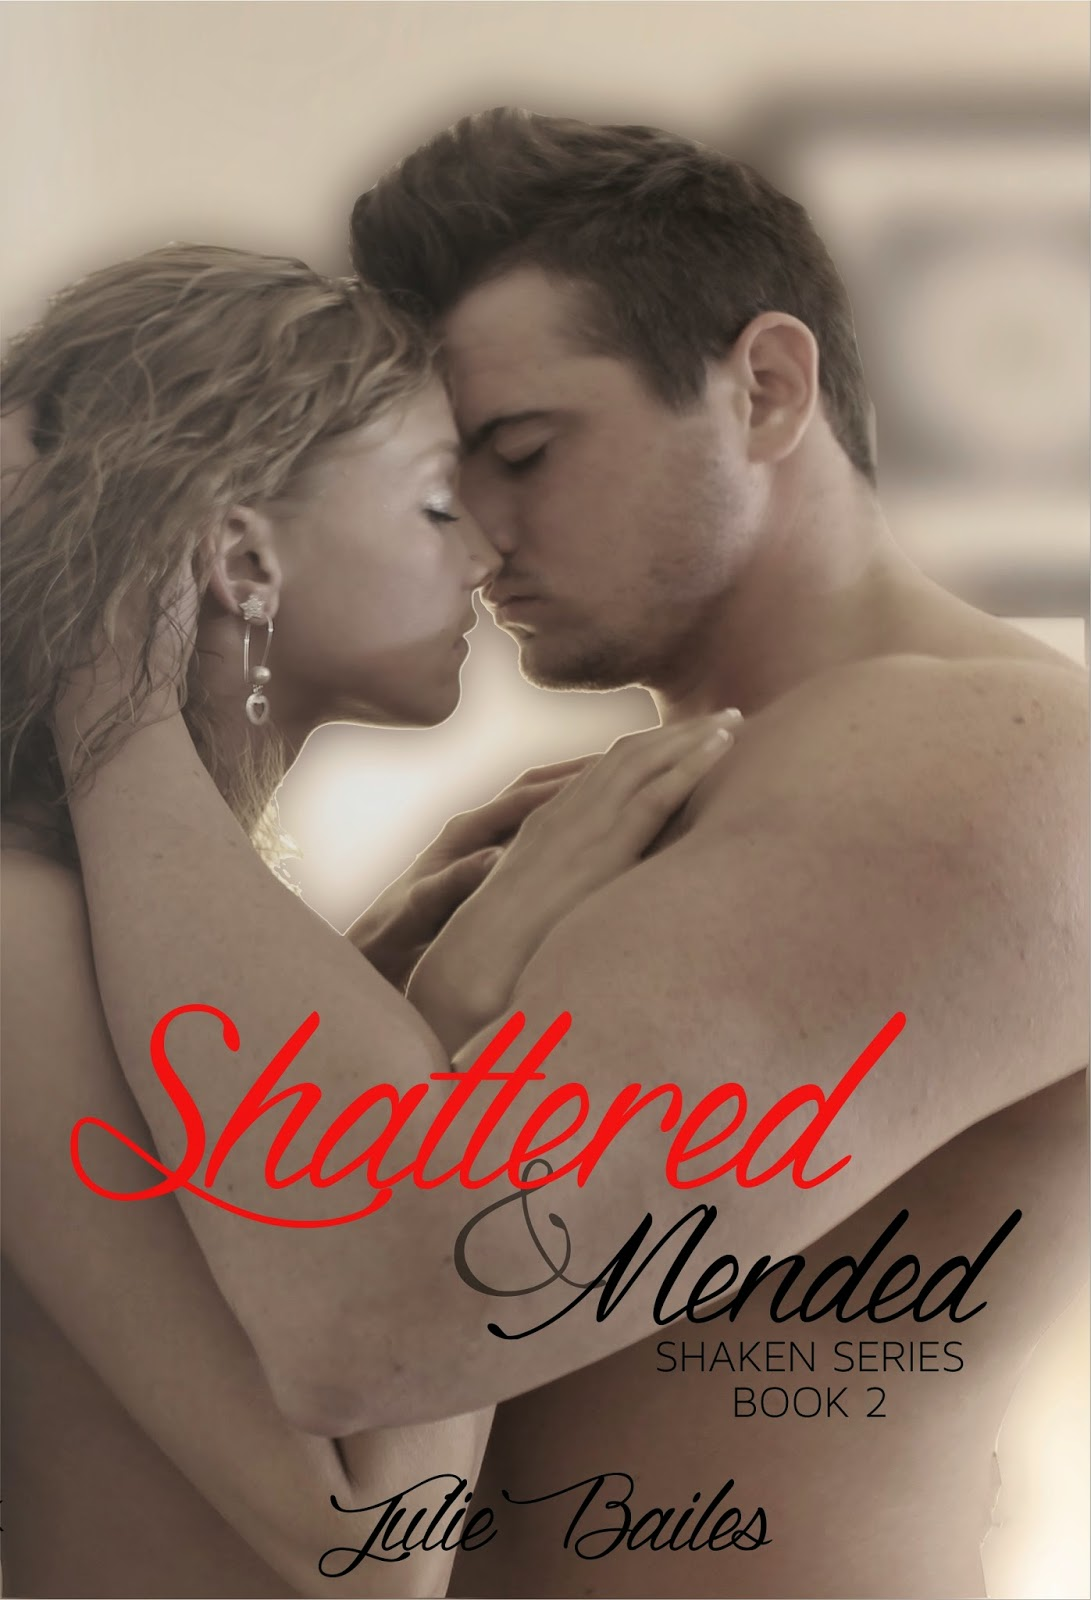 Shattered and Mended by Julie Bailes Book Review